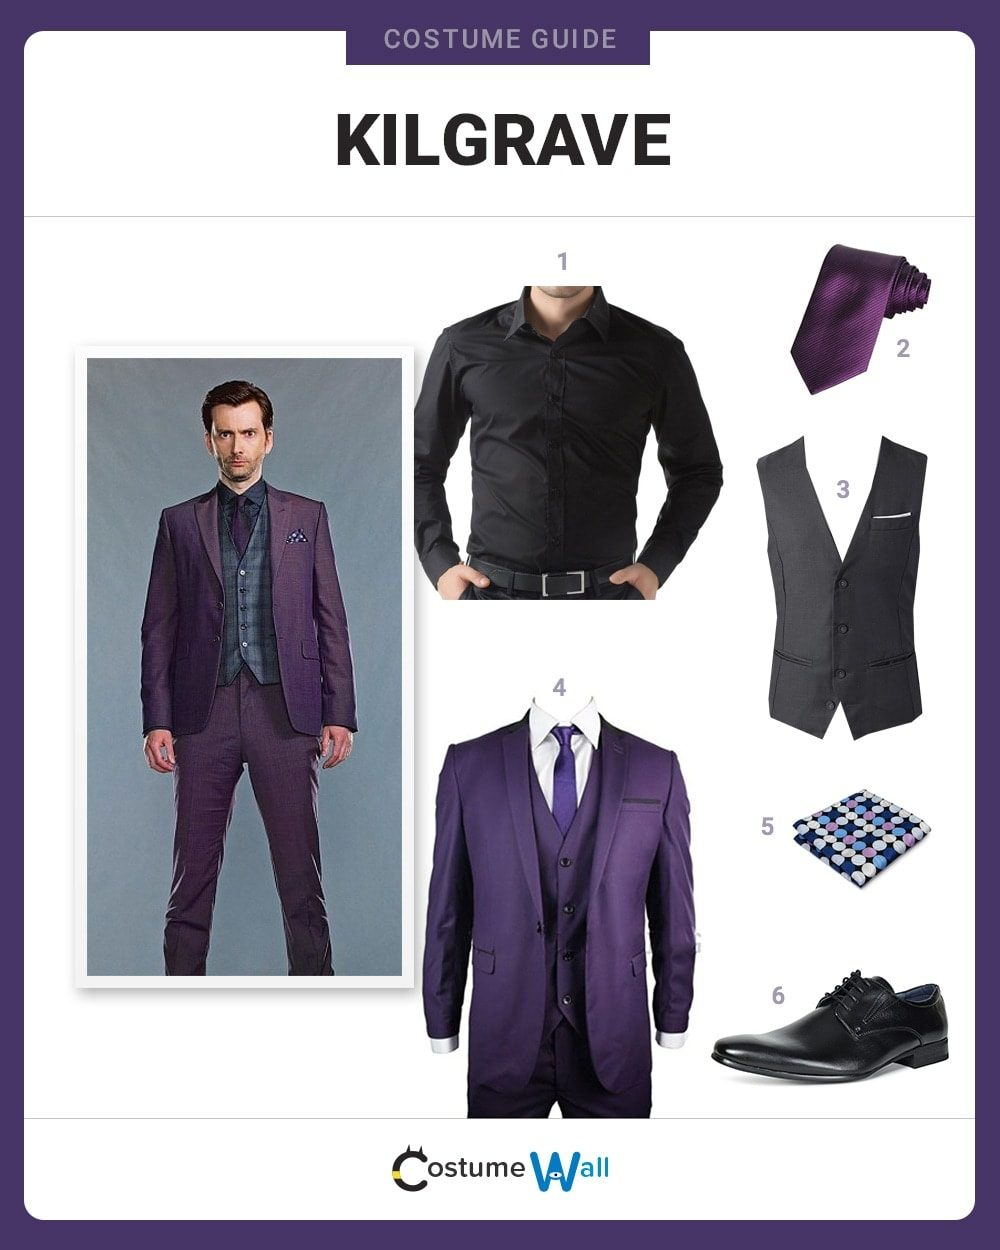 Kilgrave Costume Guide